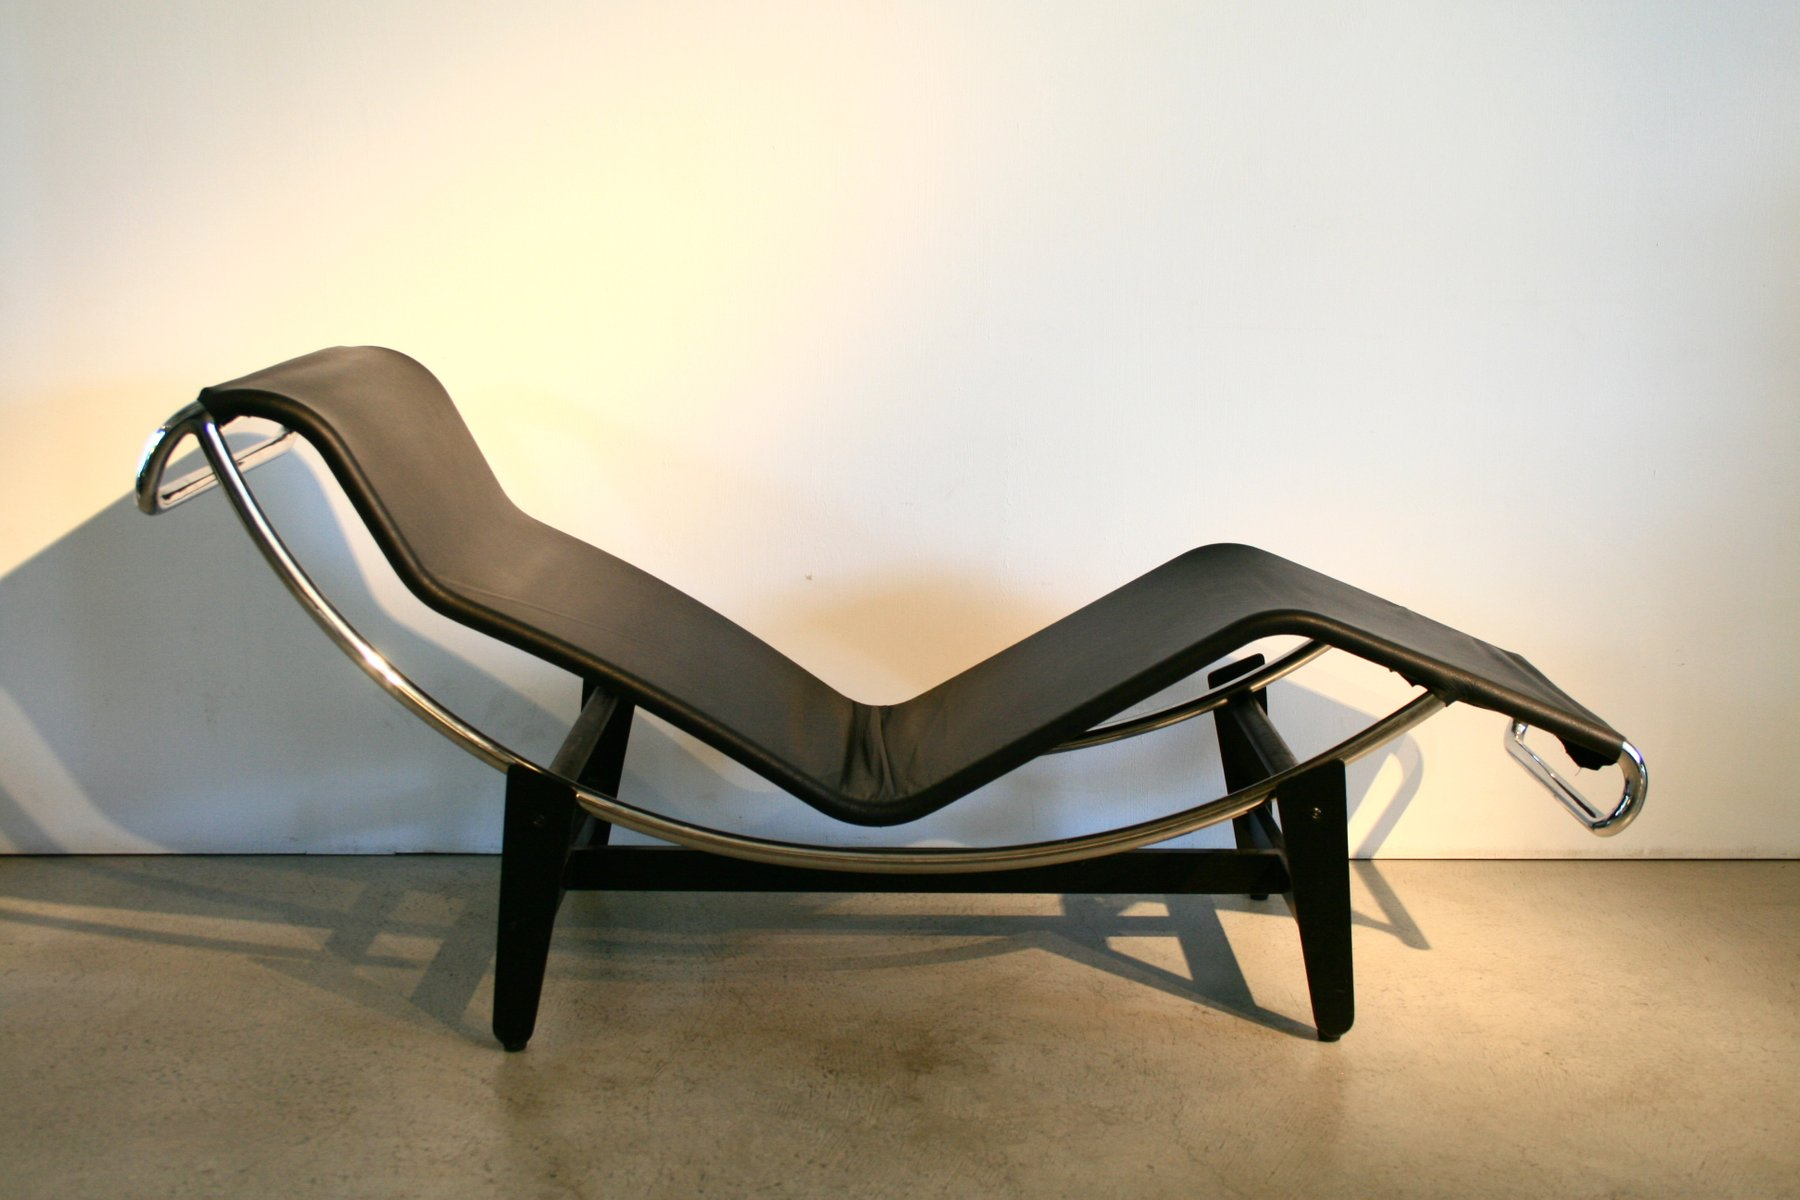 Vintage corbusier chair - Vintage Lc4 Lounge Chair By Le Corbusier For Wohnbedarf 1950s